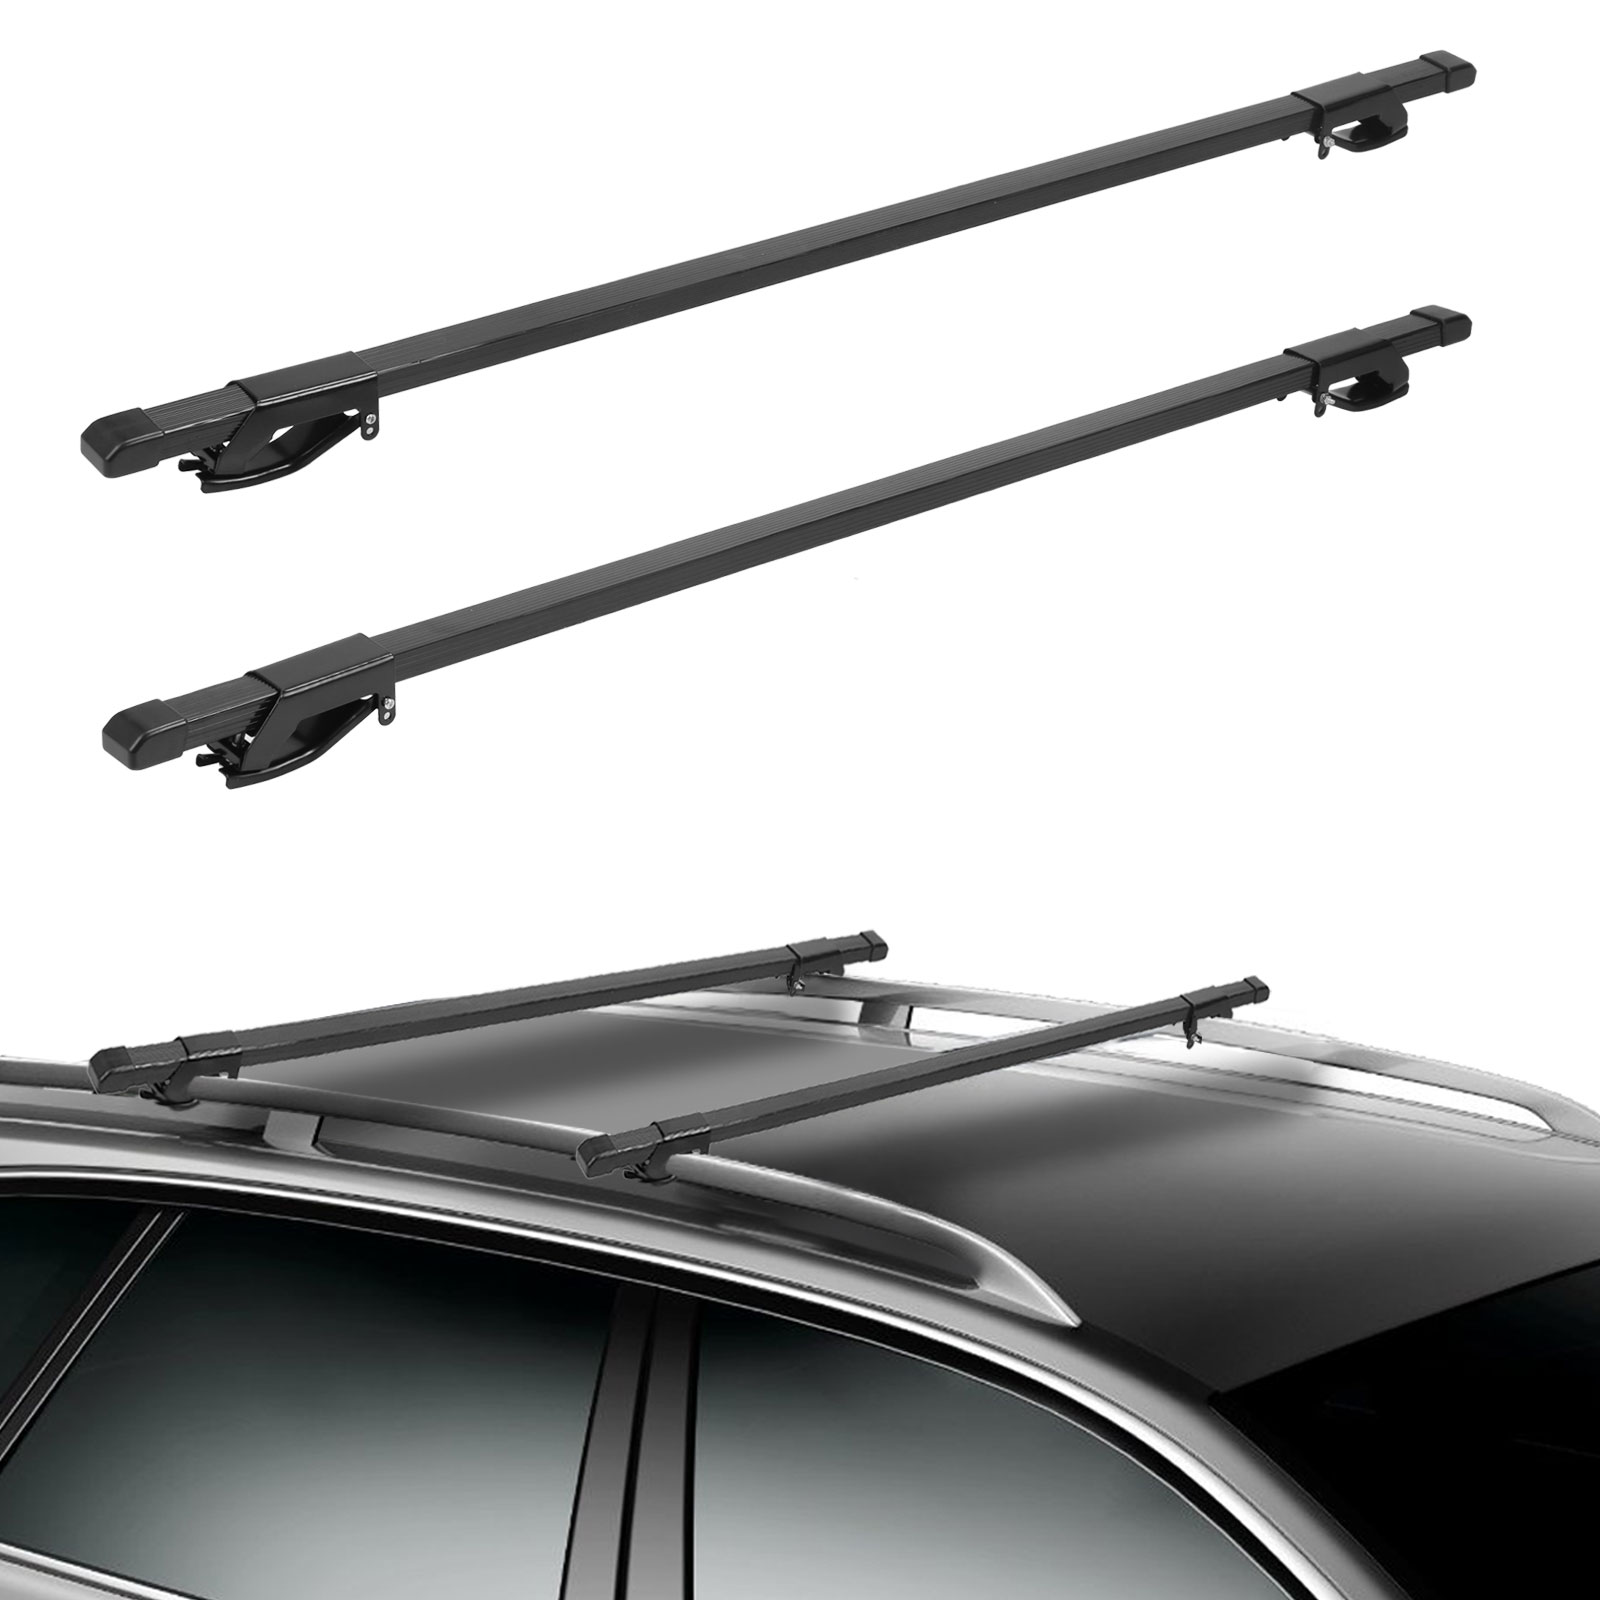 54 Quot Universal Car Top Roof Rack Cross Bars Luggage Carrier